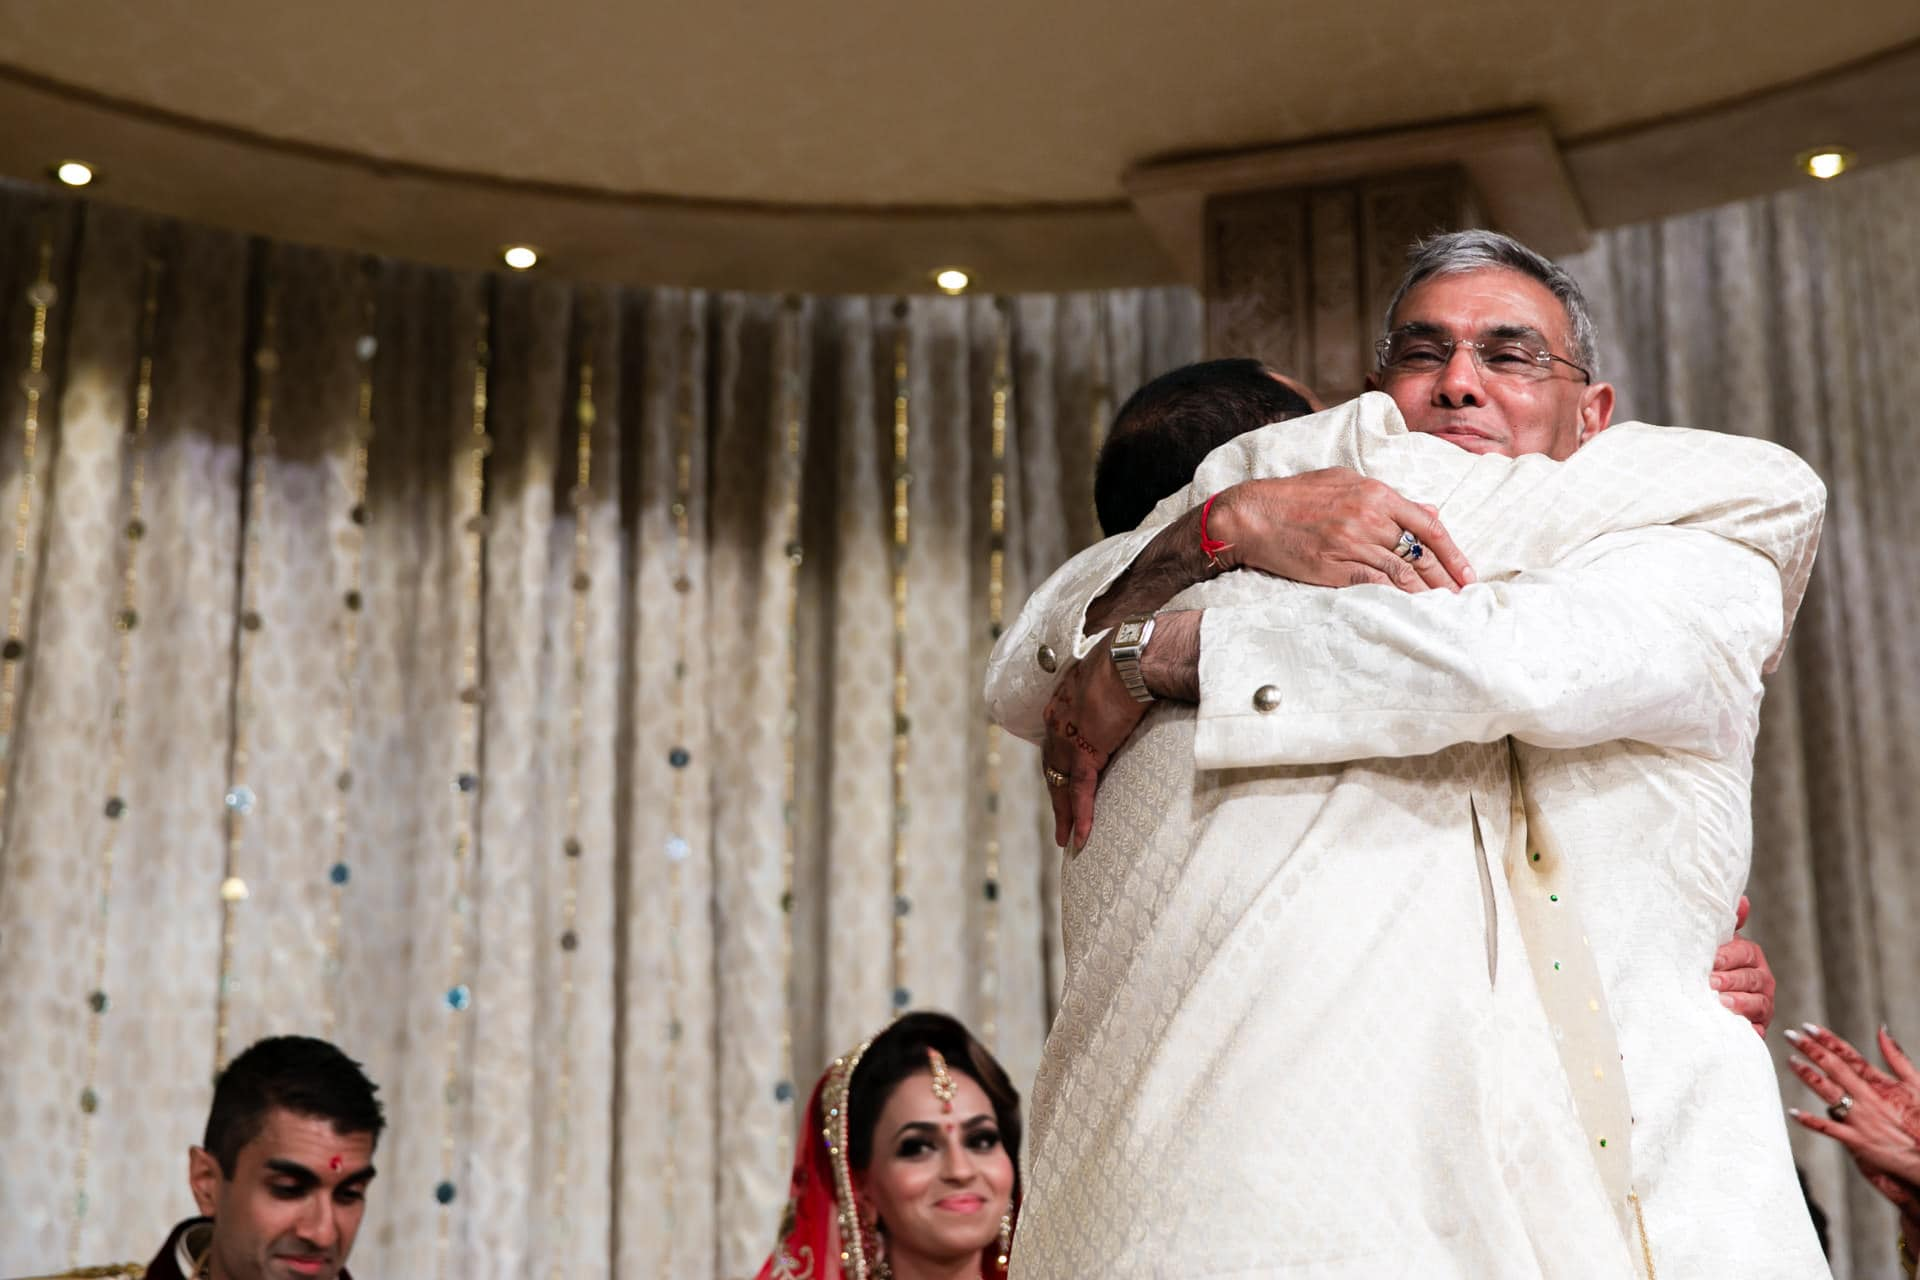 Fathers of bride and groom hugging